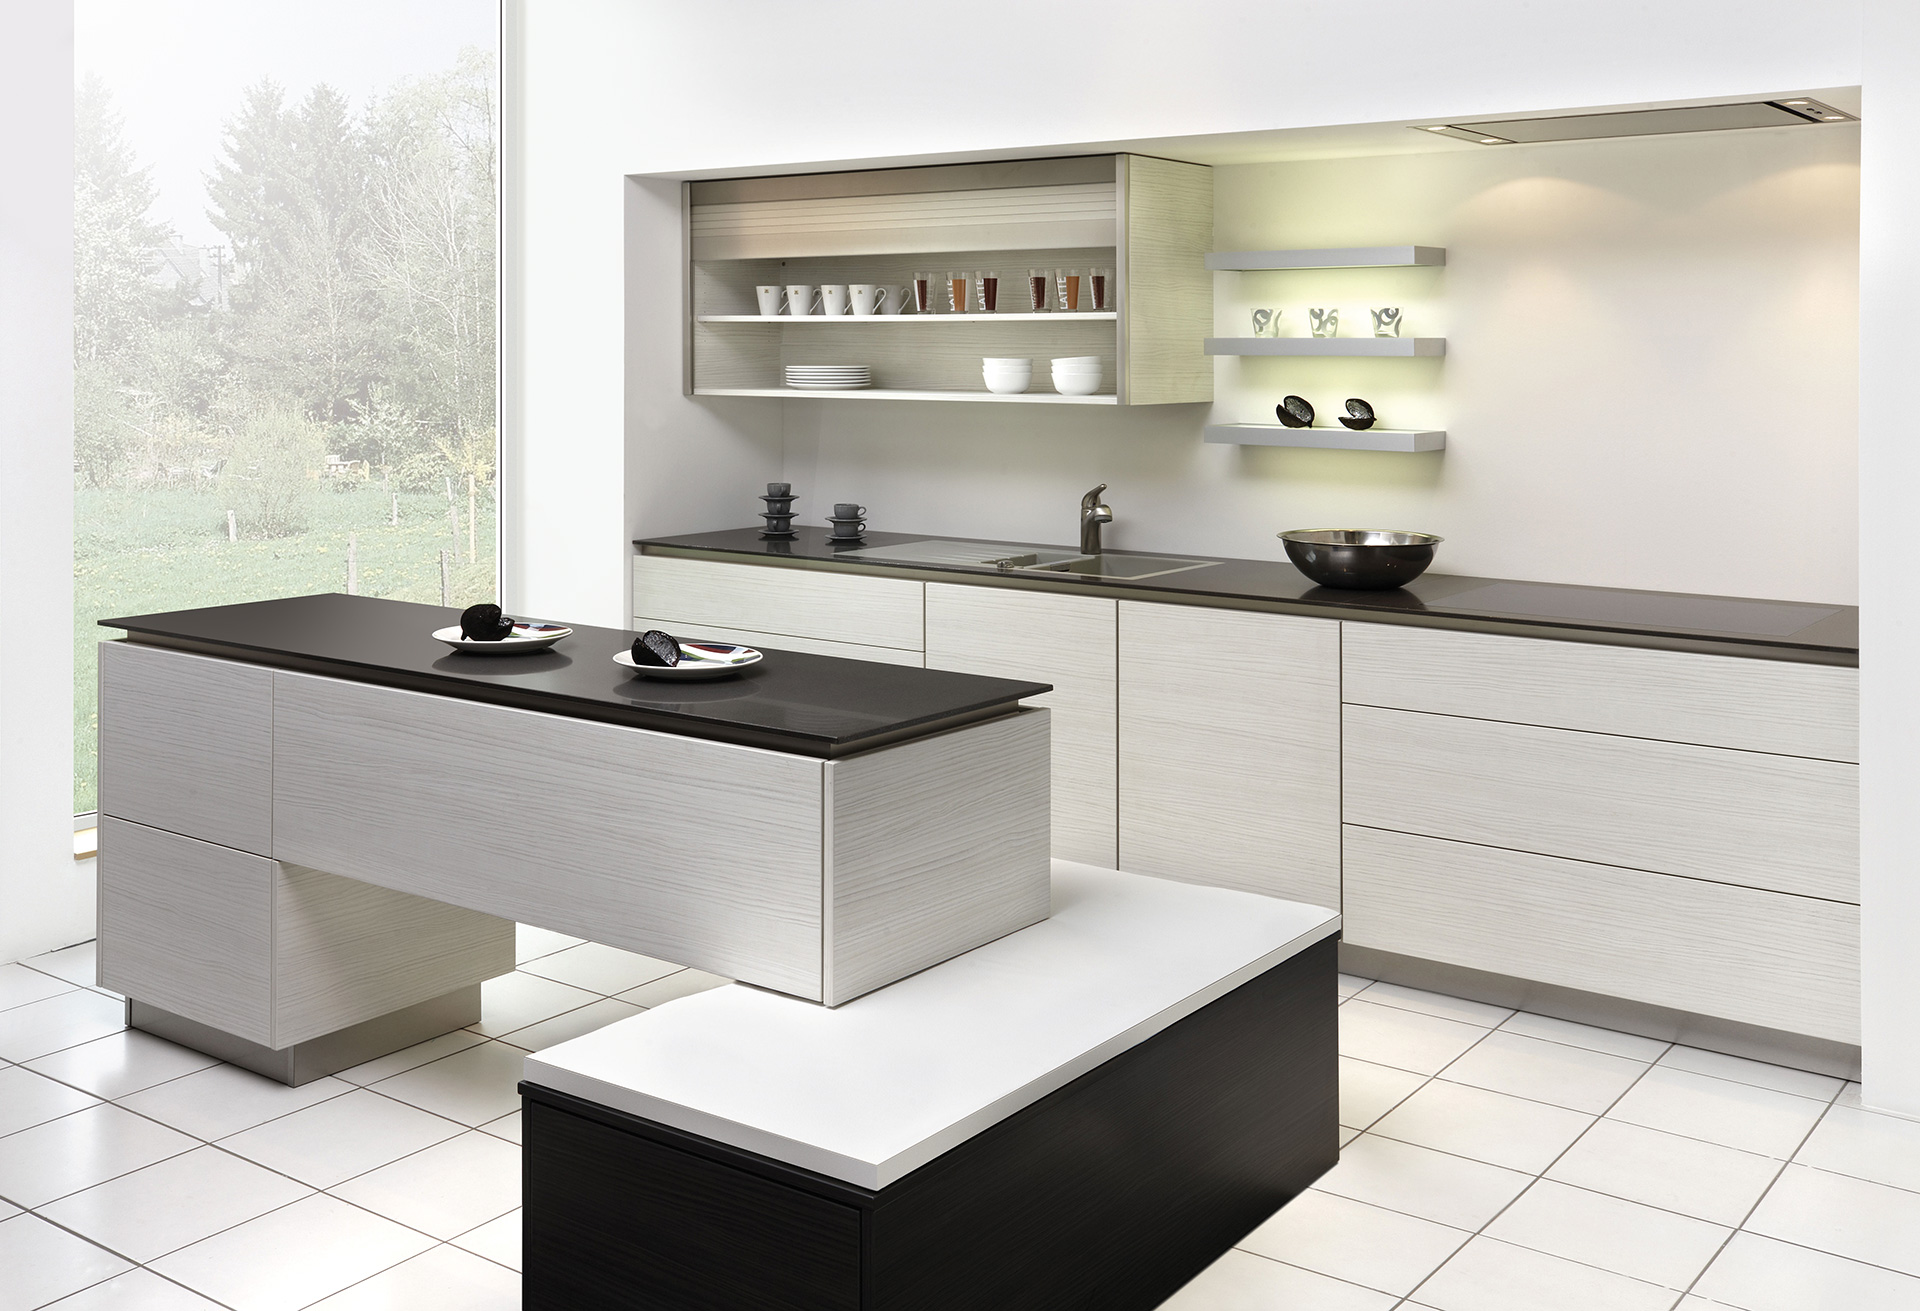 Küche Poggenpohl Ebay German Mueller Kitchen Luxury Kitchen Gaggenau Neff